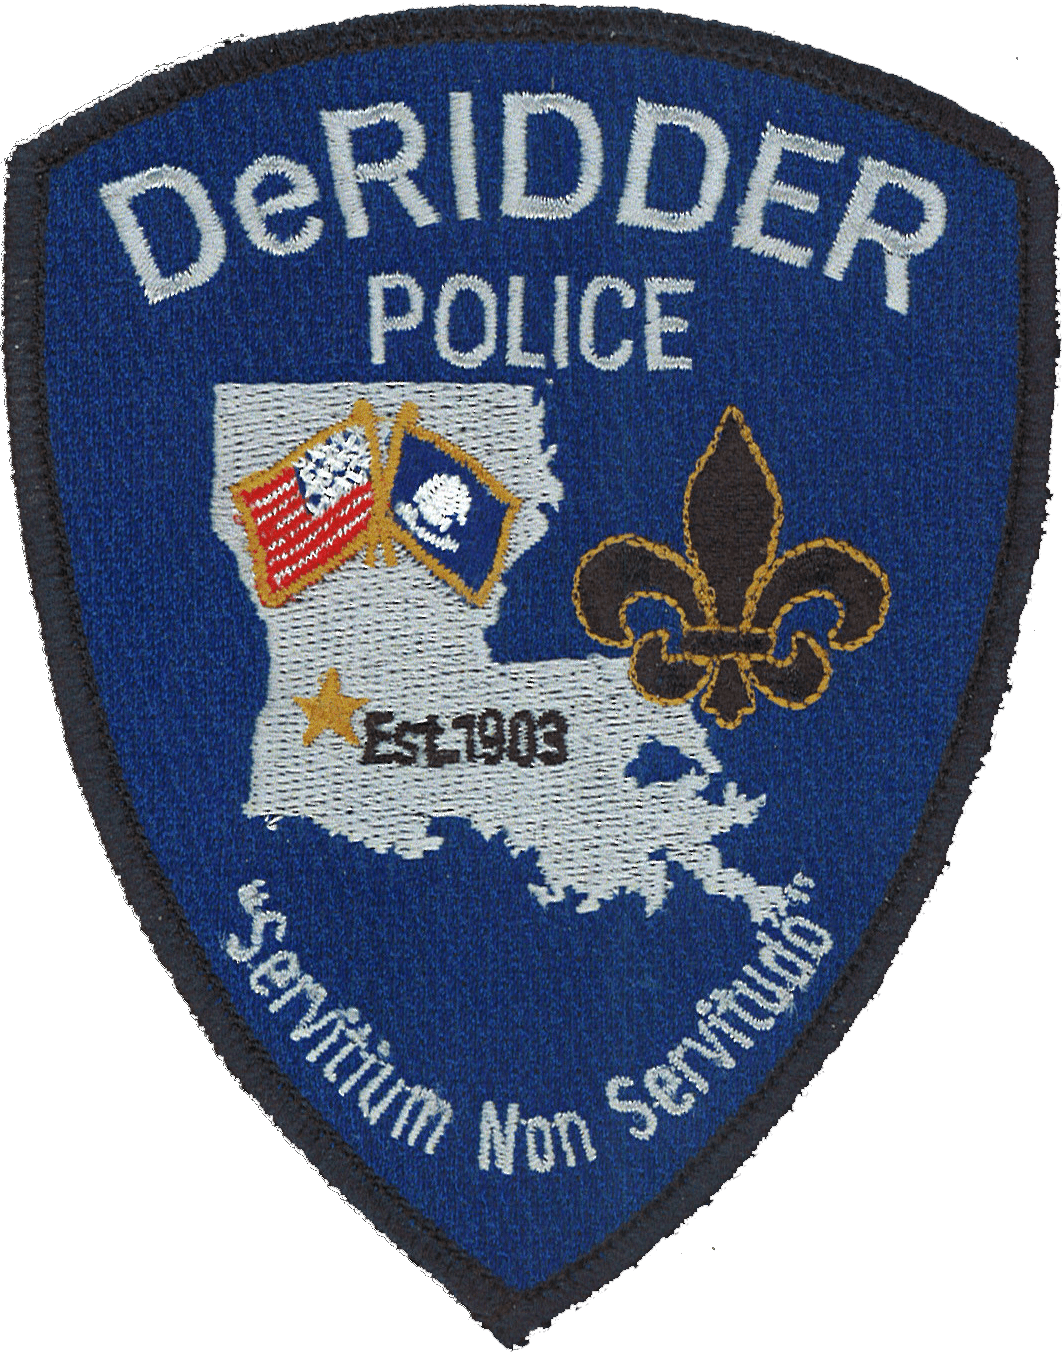 DeRidder Police Patch